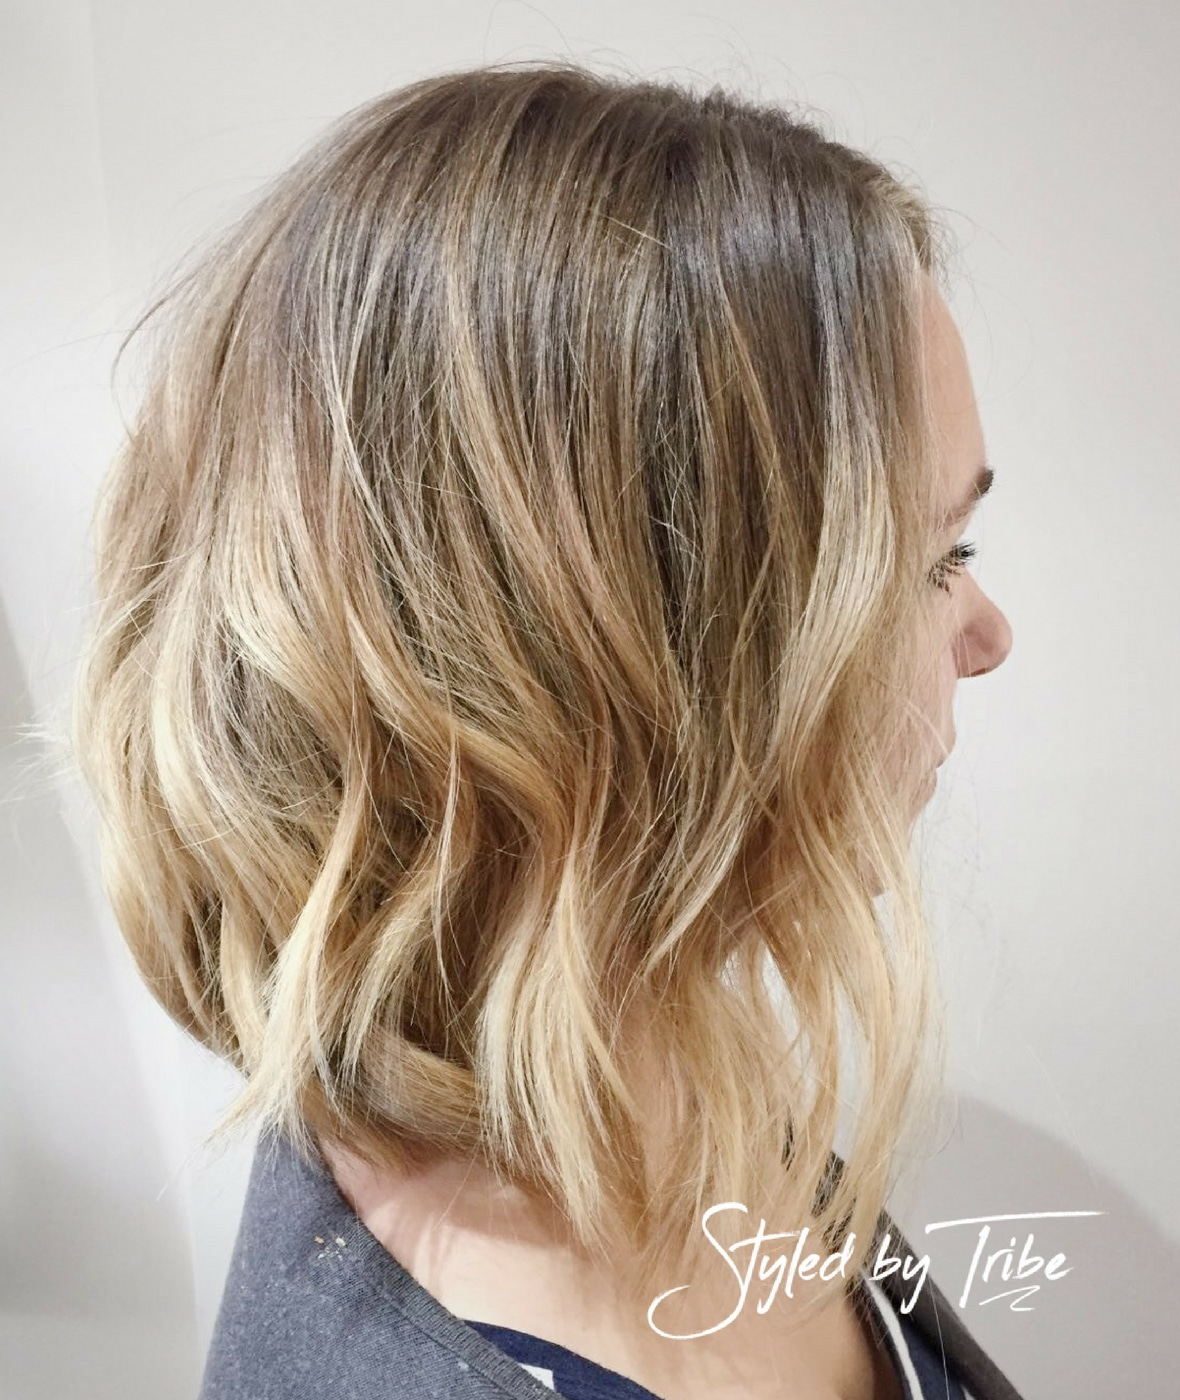 aveda haircut prices balayage amp mid length cut for aveda colour styled 3323